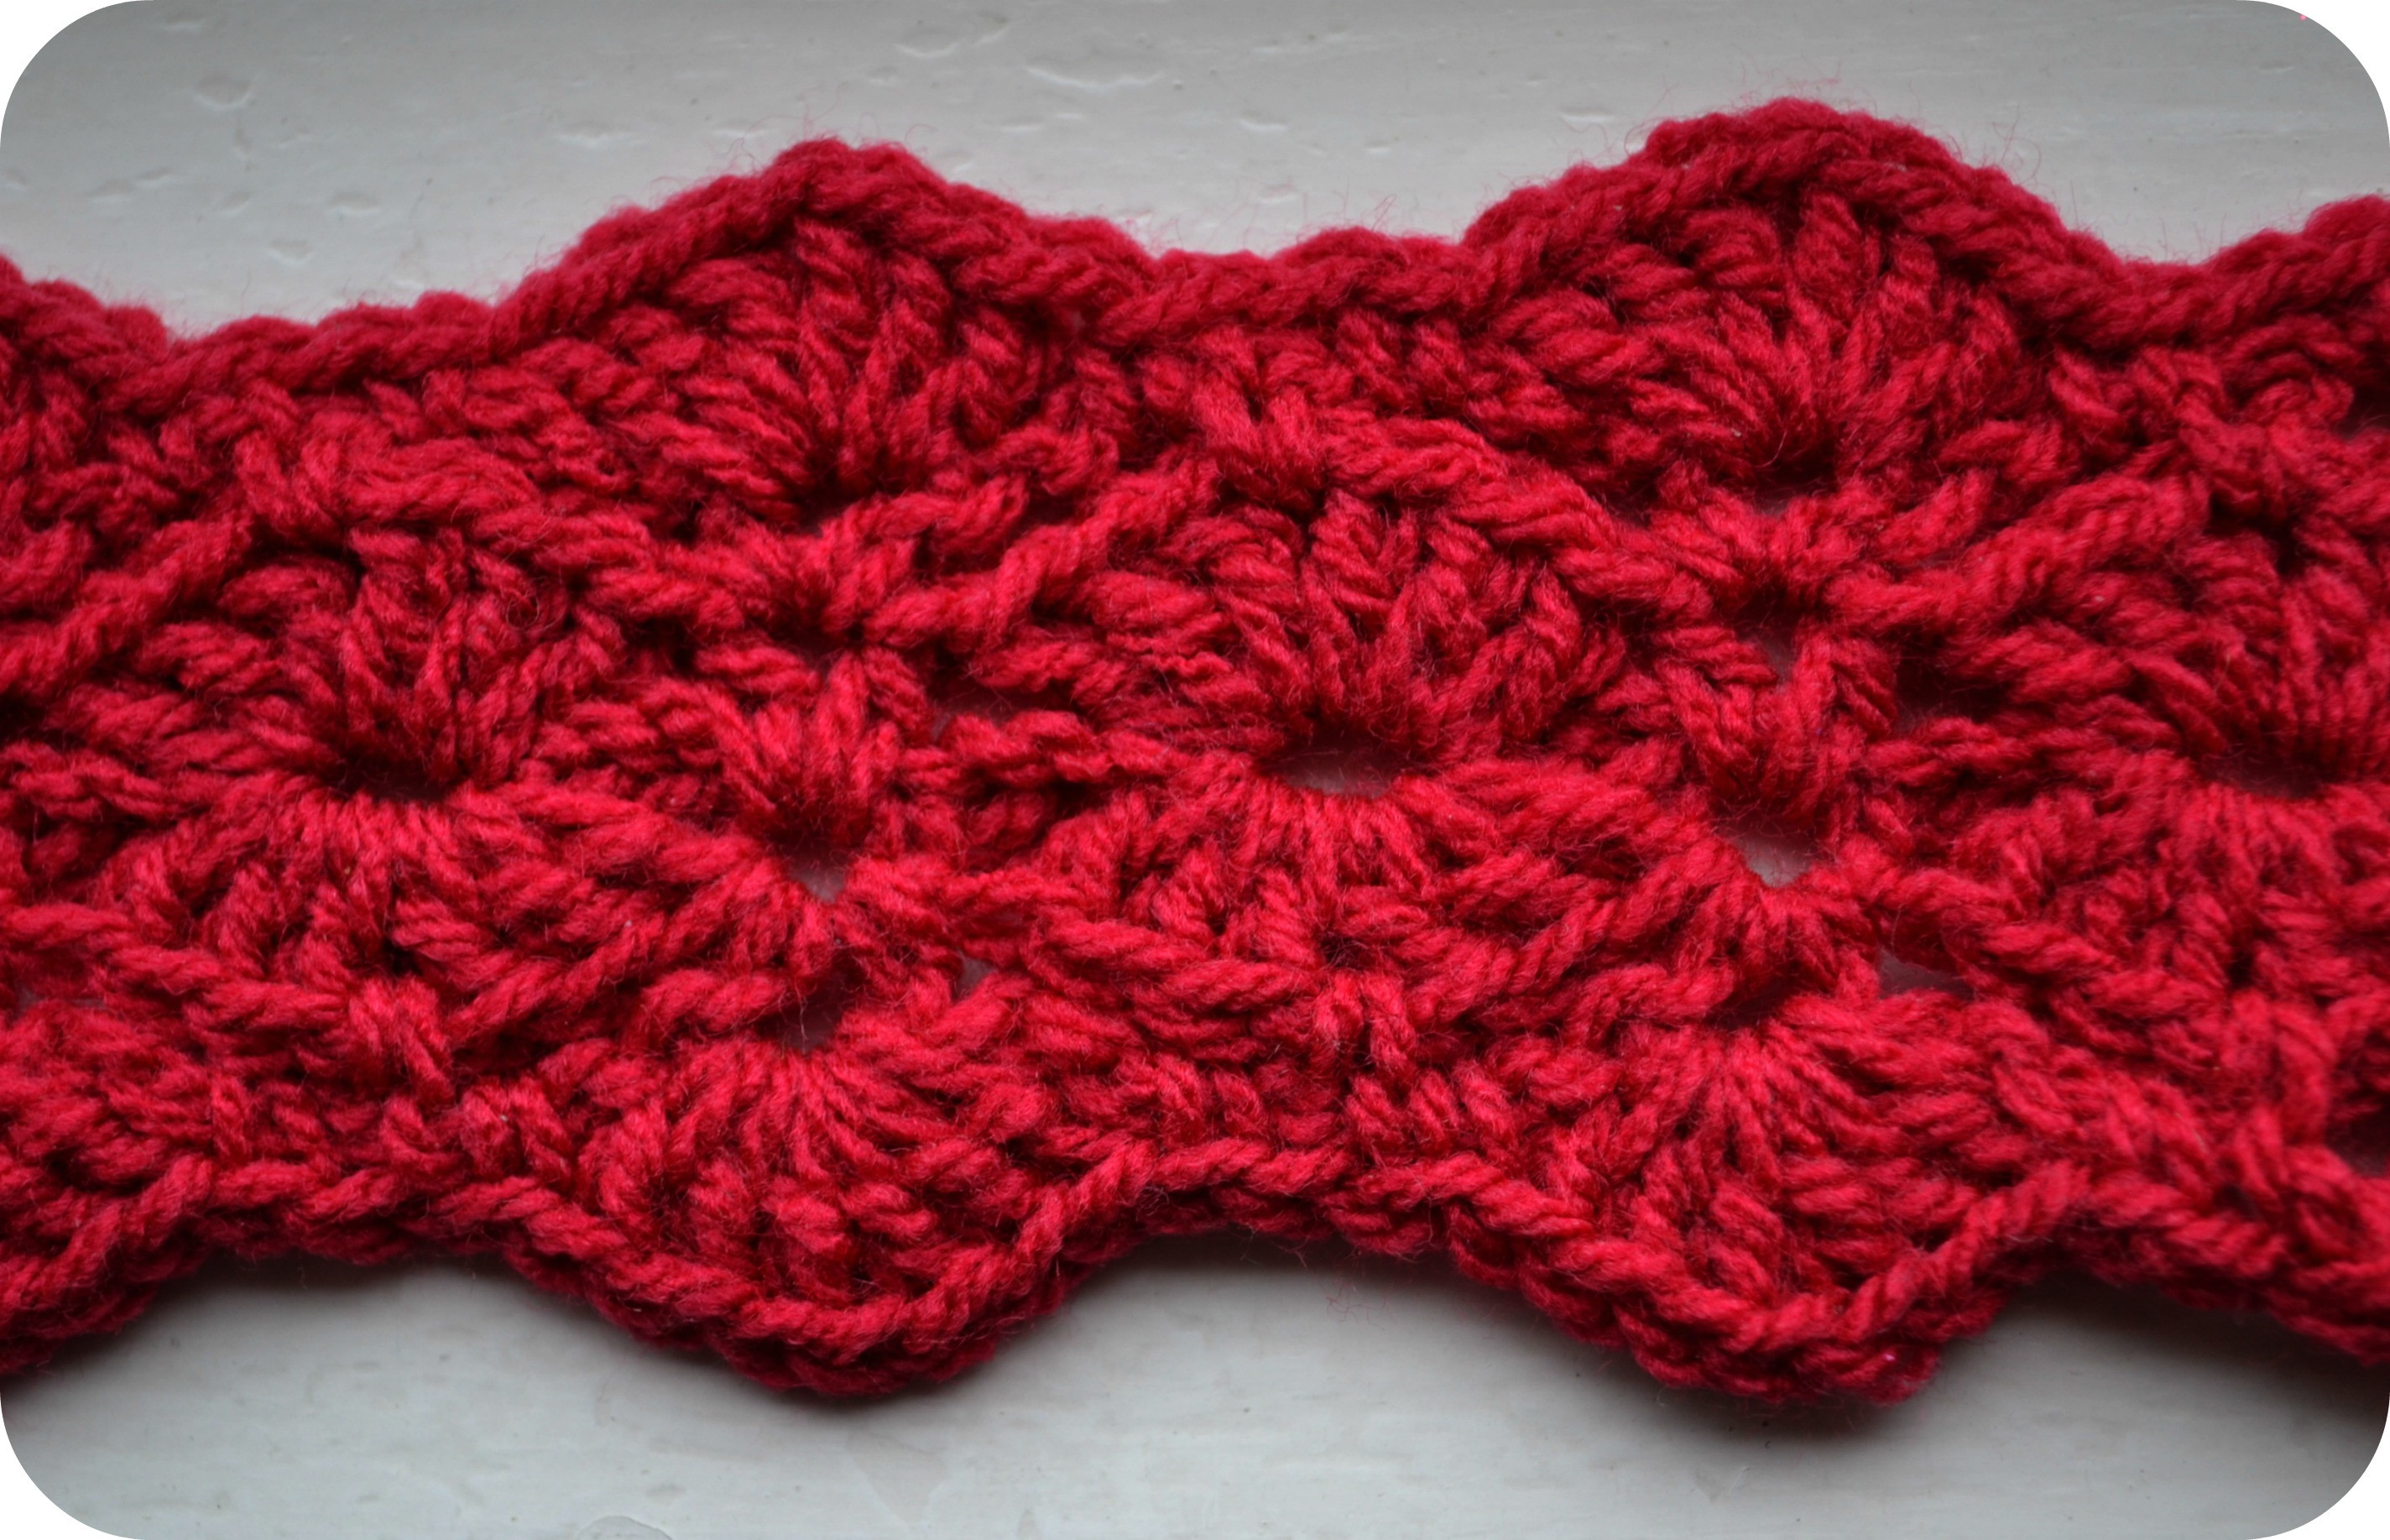 Crochet Videos New Get Me All the Free Patterns for Crocheted Earrings – Easy Of Unique 50 Models Crochet Videos